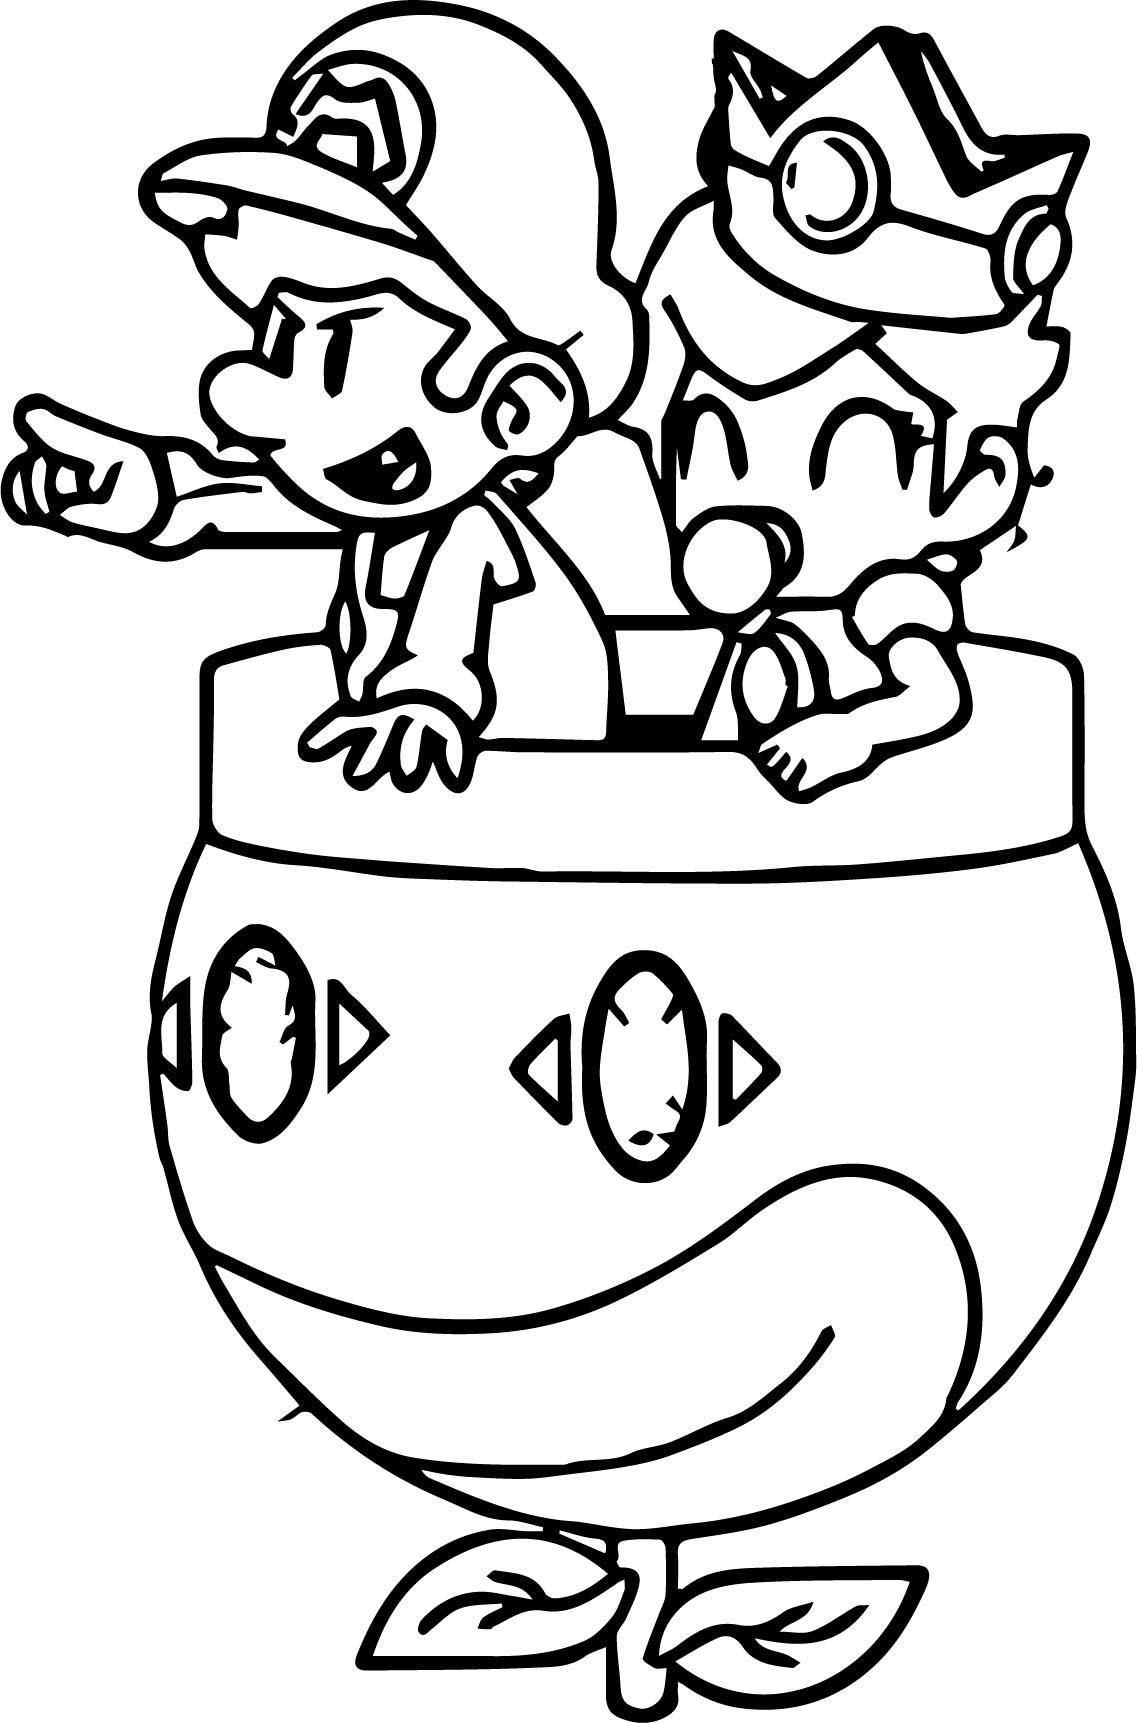 awesome Daisy And Mario Go Coloring Page Mario coloring